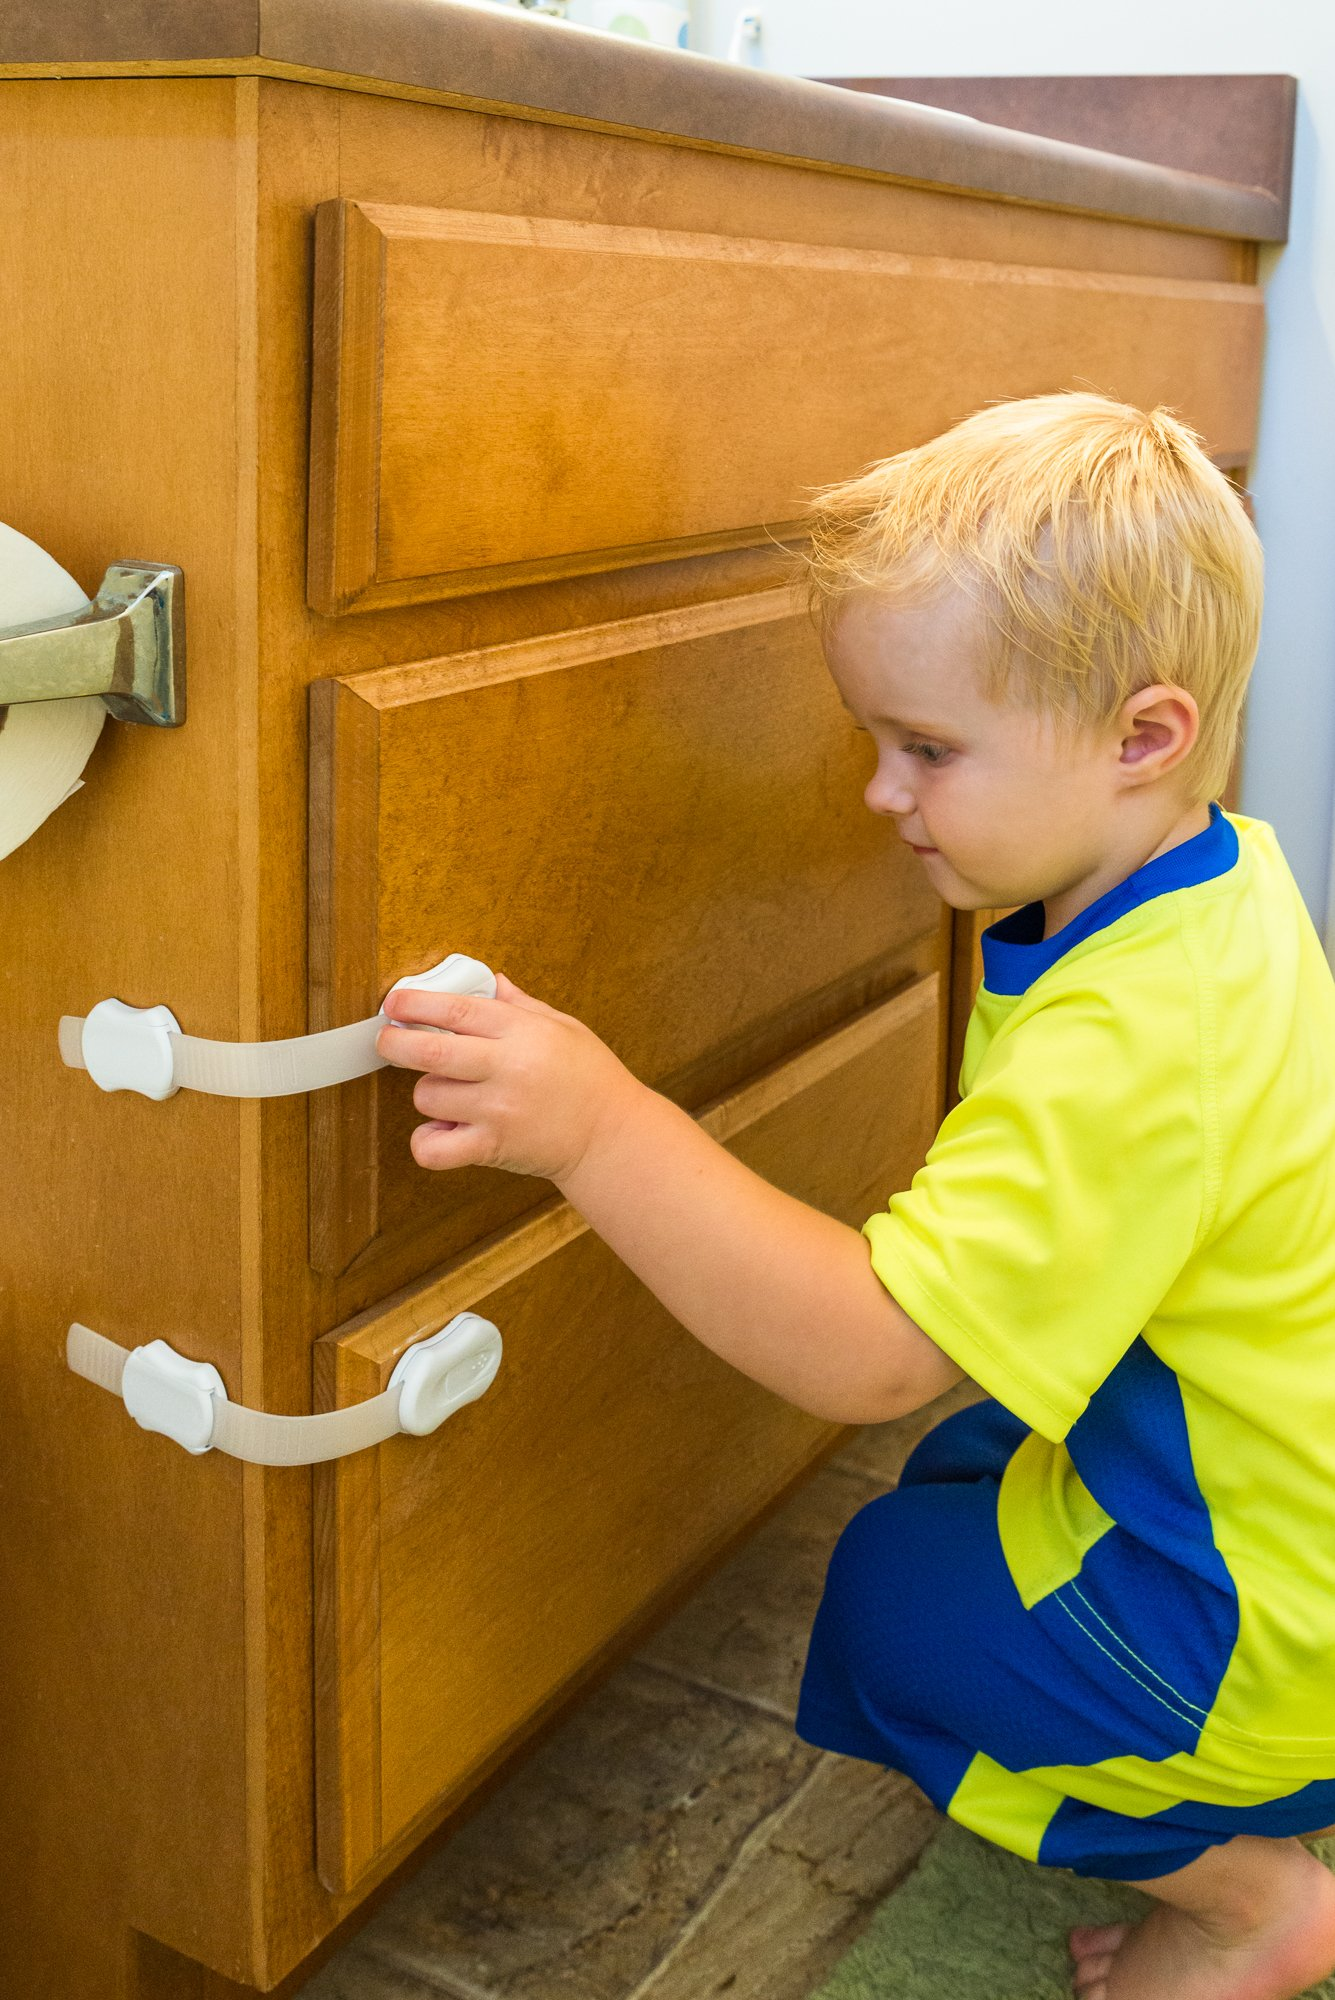 Adjustable Child Safety Locks By DOMOVOI - Ideal For Child Proofing Your Whole Home – Cabinets, Toilet Seats, Doors, Drawers & All Appliances – Durable Material Construction – Extra 3M Tapes by DOMOVOI (Image #8)